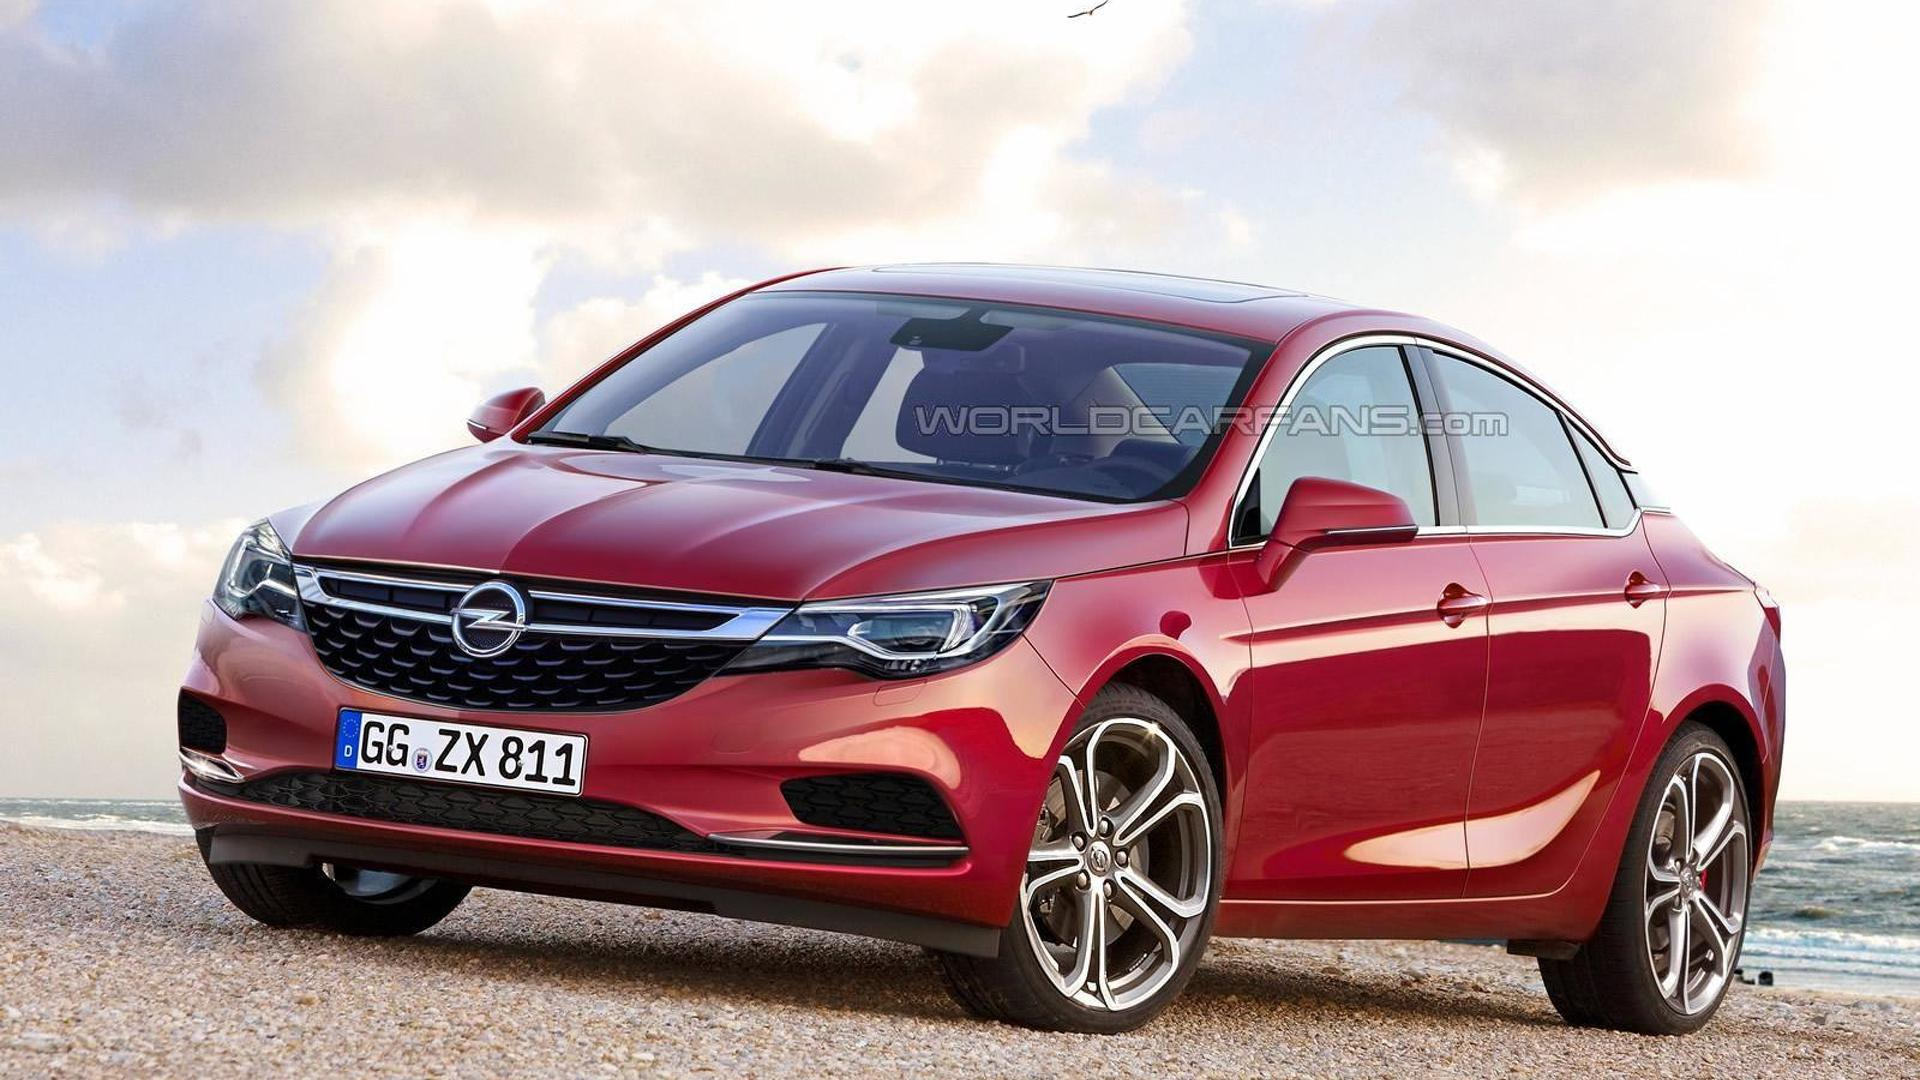 2017 Opel Insignia speculative render shows major departure from outgoing model